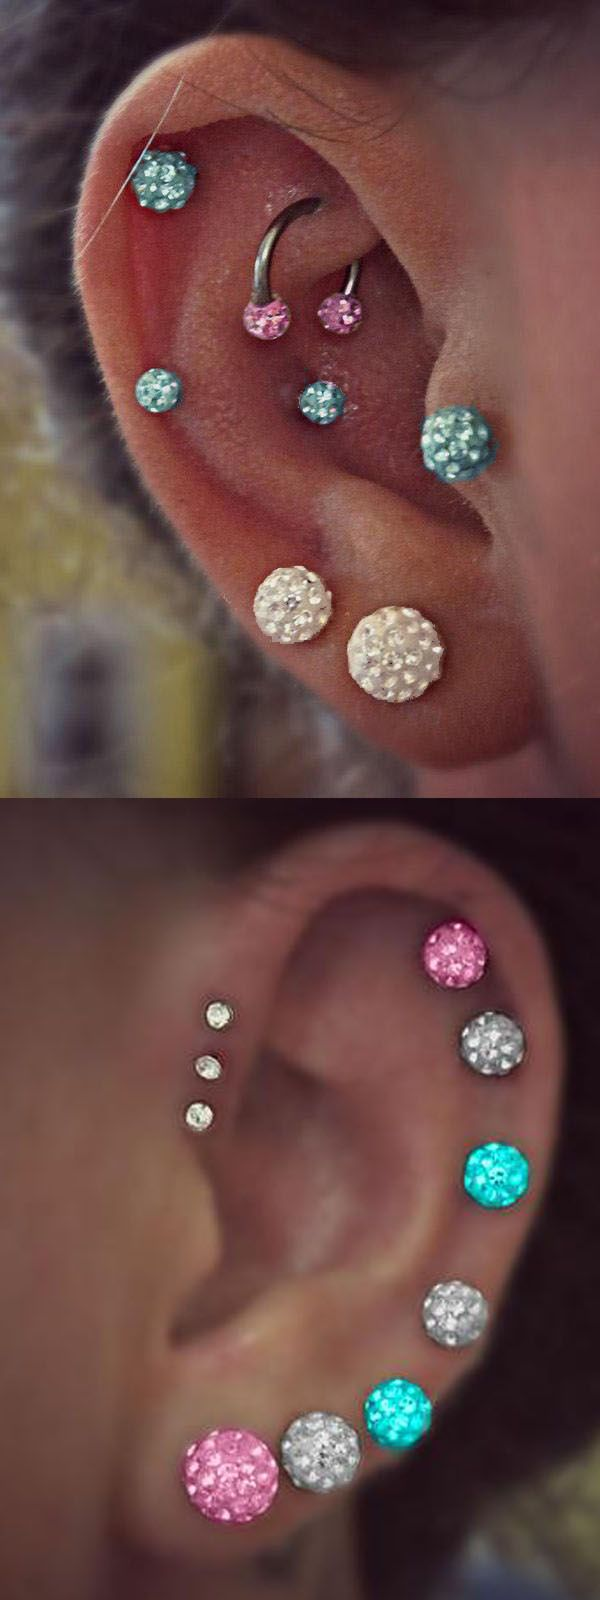 Unique Ear Piercing Ideas at MyBodiArt.com - Clear Crystal Ball Cartilage Stud Earrings - Pink Rook Horseshoe Barbell - Blue Tragus Jewelry